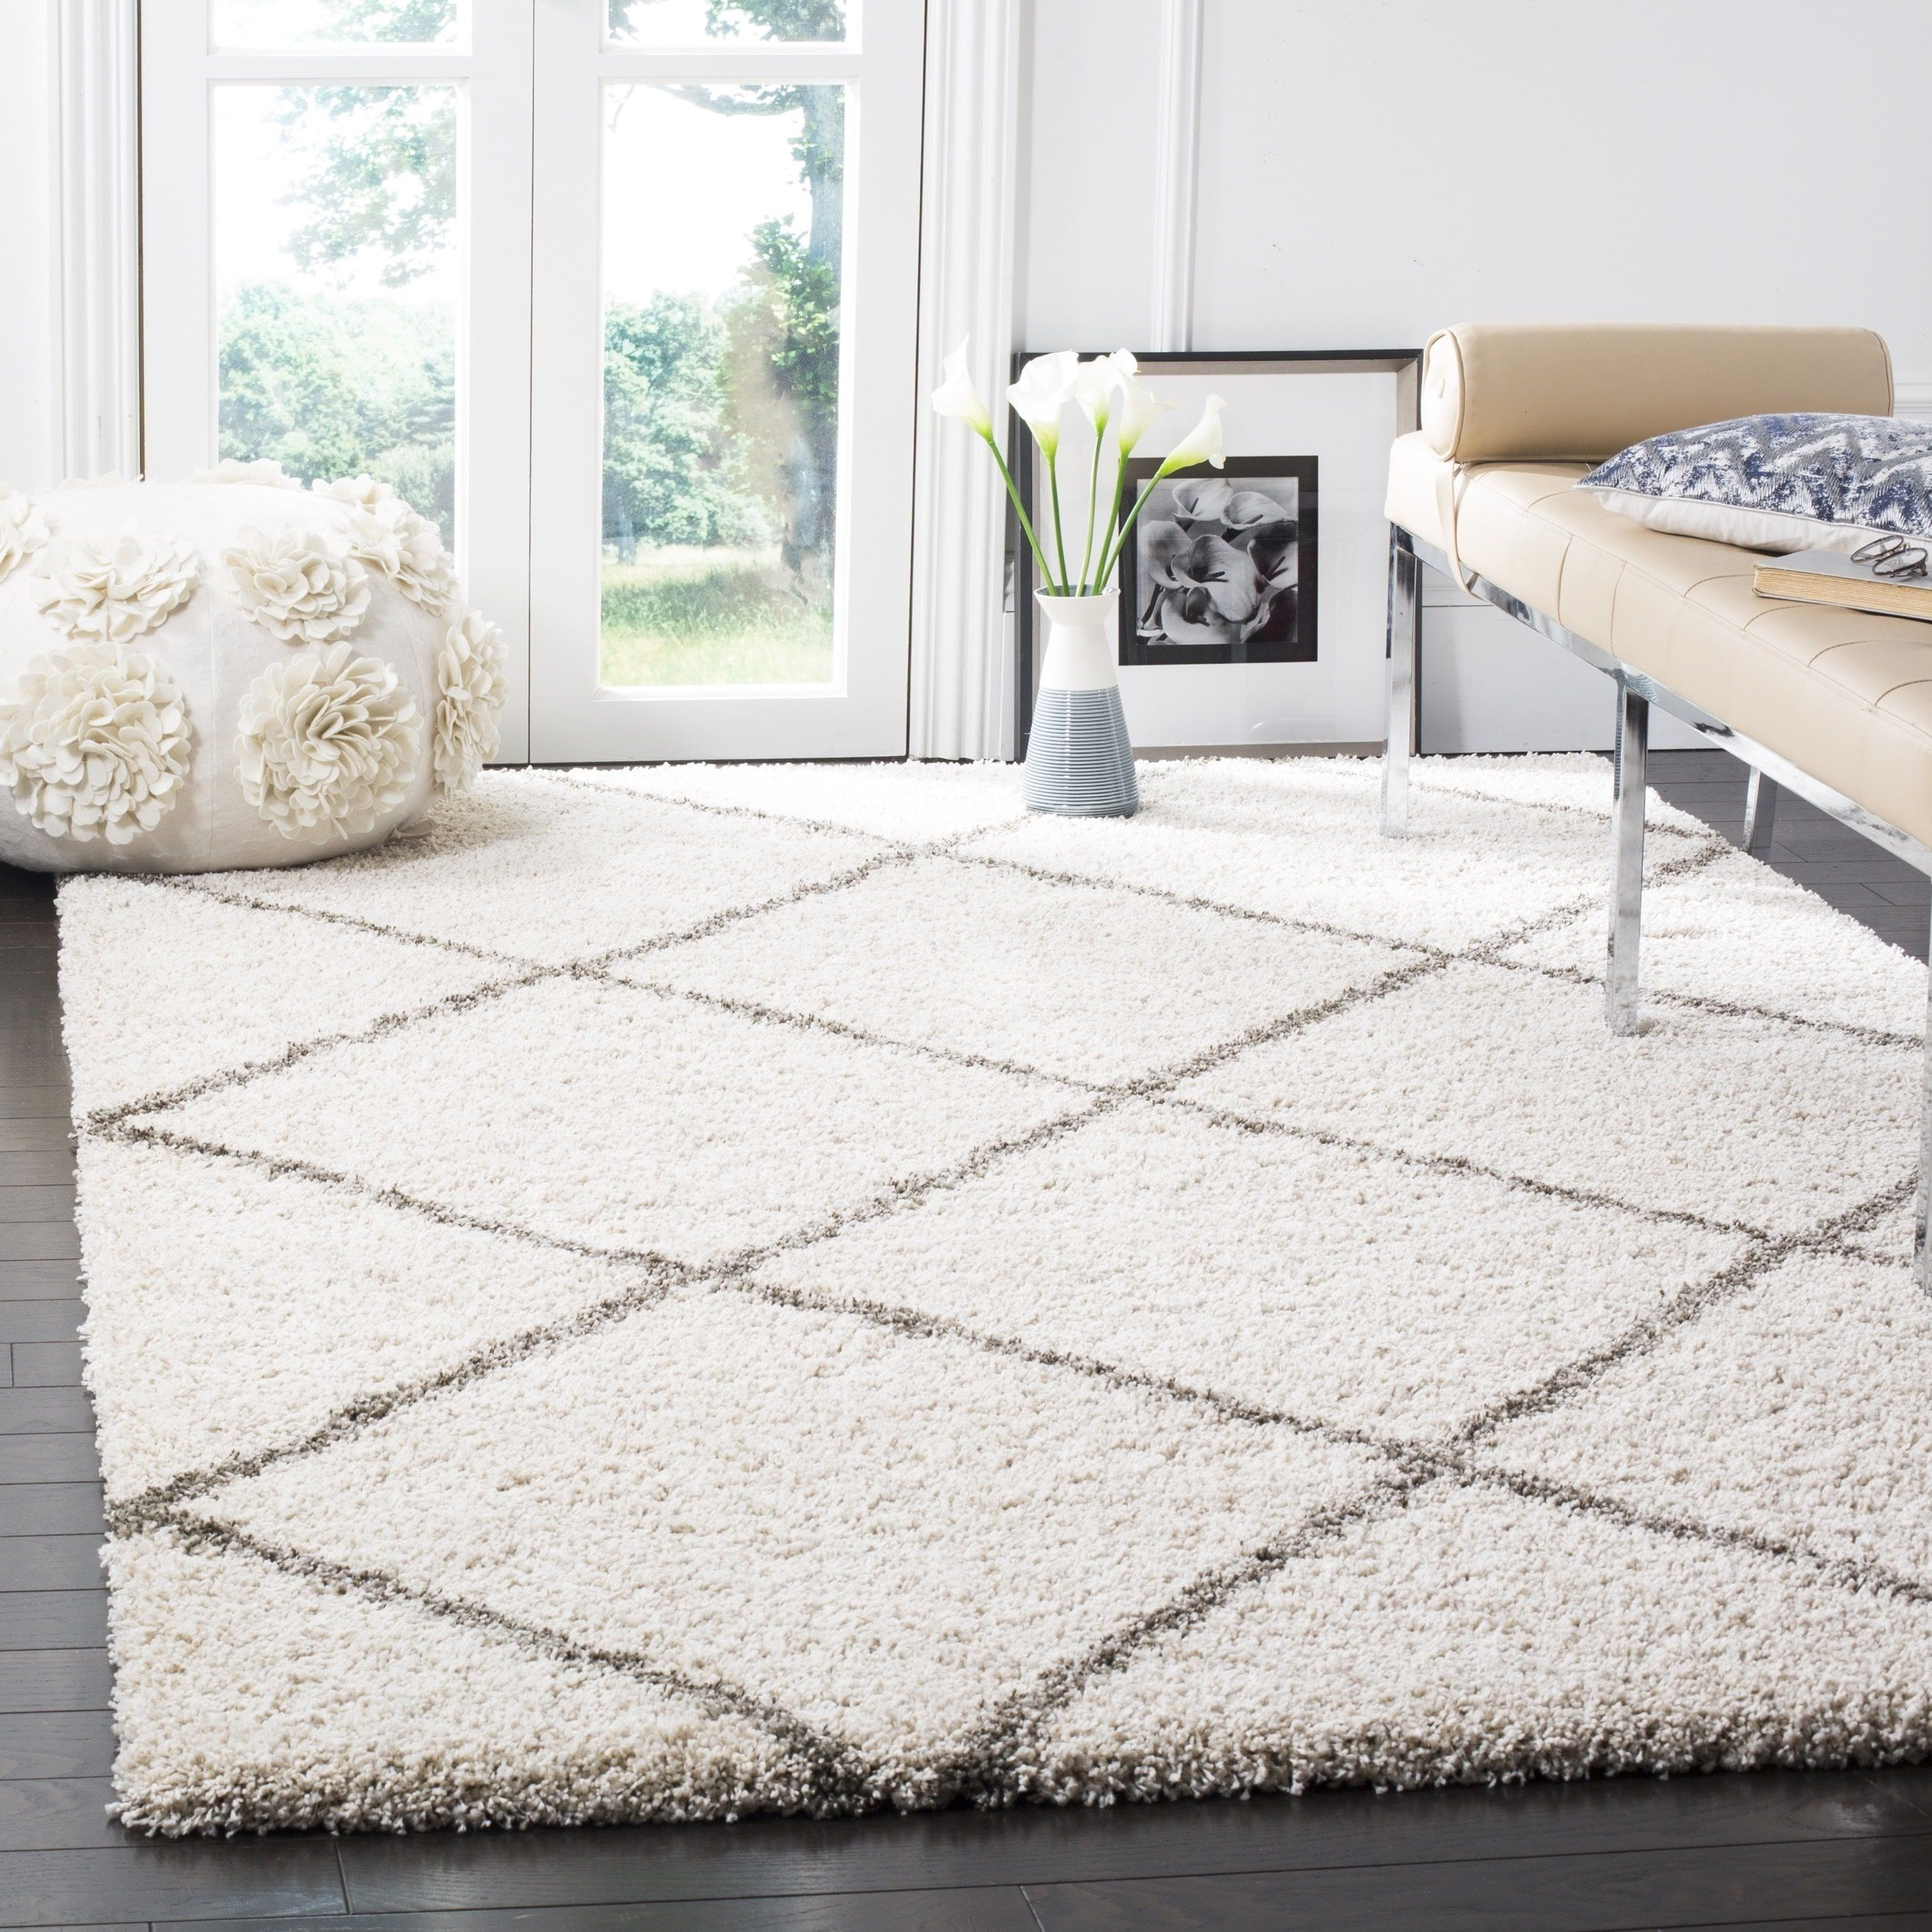 7x9 - 10x14 Rugs : Use large area rugs to bring a new mood to an old ...